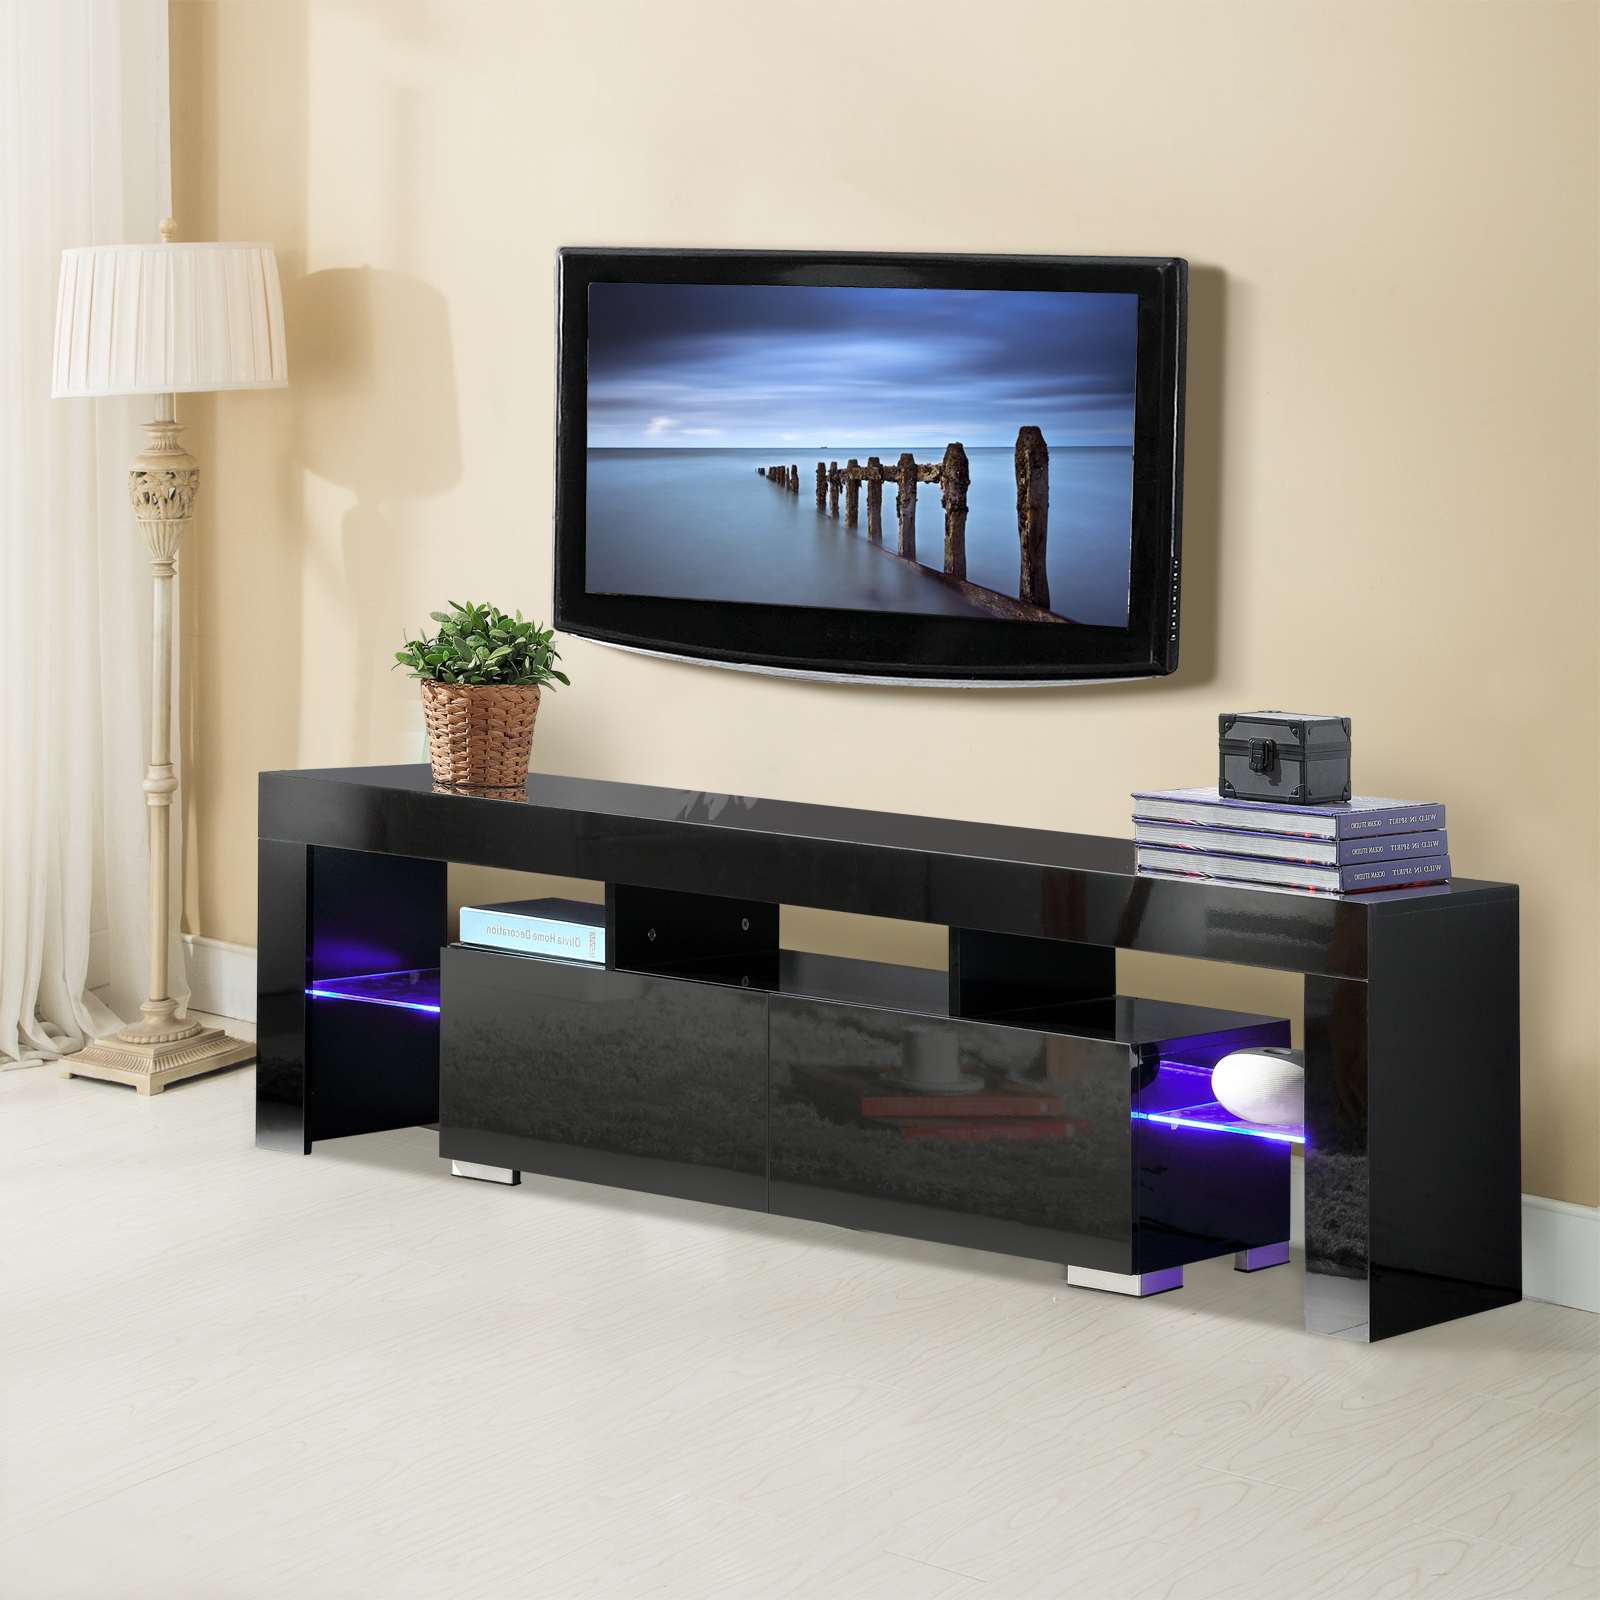 Kai 63 Inch Tv Stands Regarding Most Recent Mecor Tv Stand With Led Lights, 63 Inch High Gloss Tv Shelves (View 8 of 20)